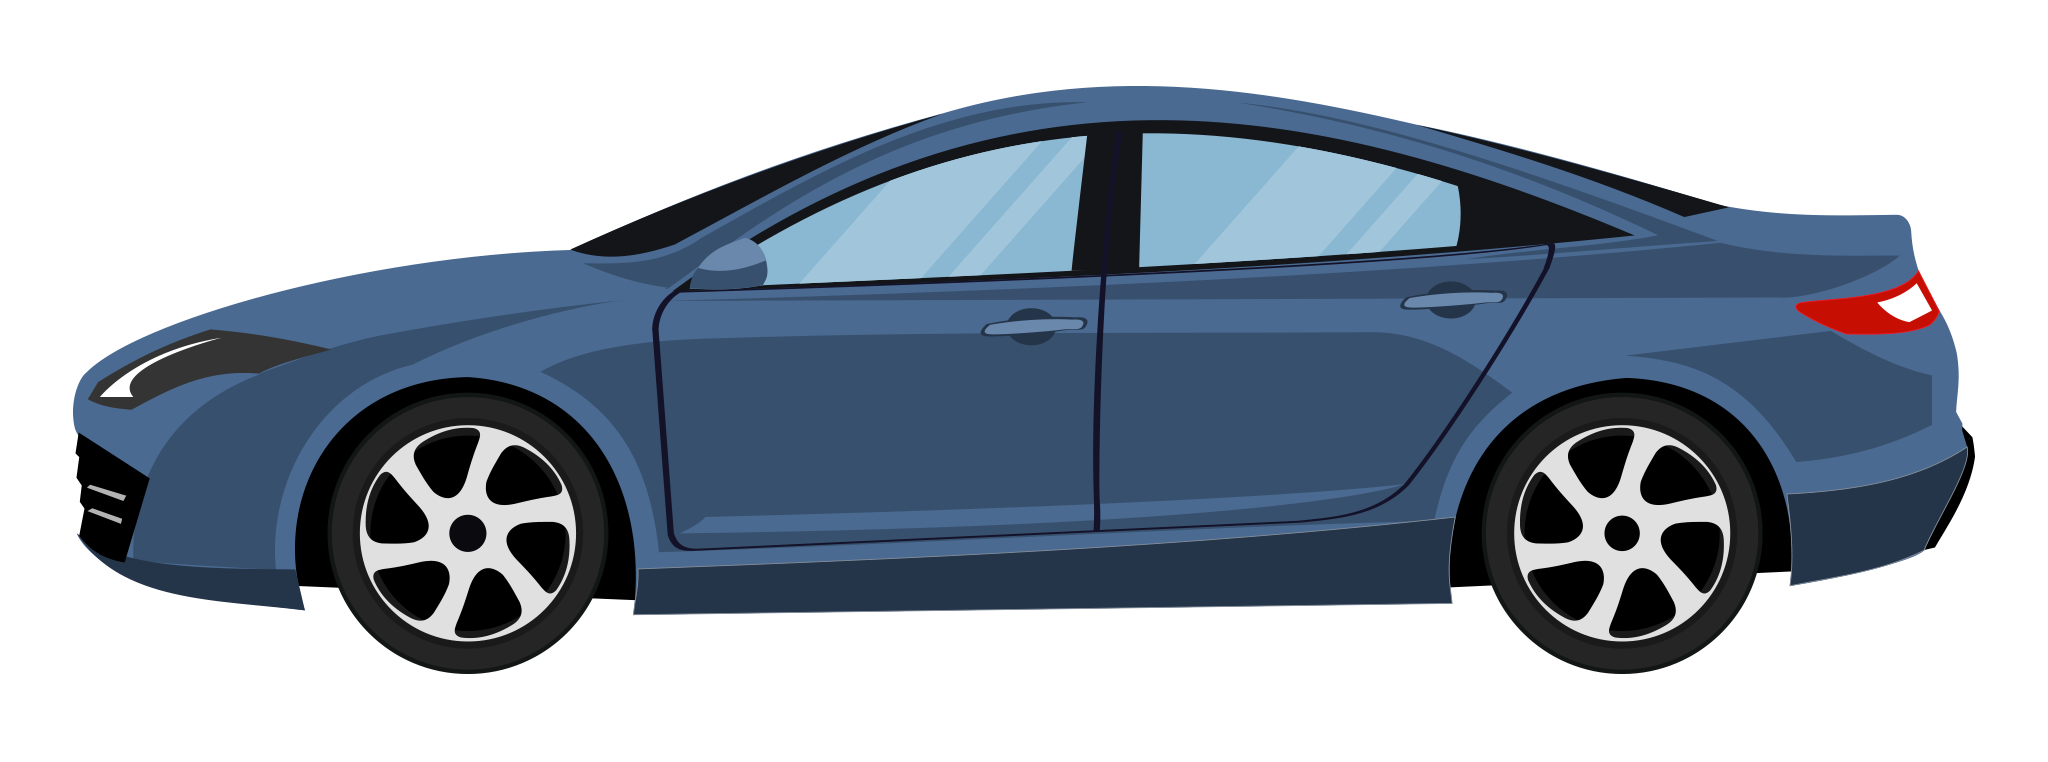 I wish i had a car clipart graphic Car-Clipart PNG | HD Car-Clipart PNG Image Free Download graphic